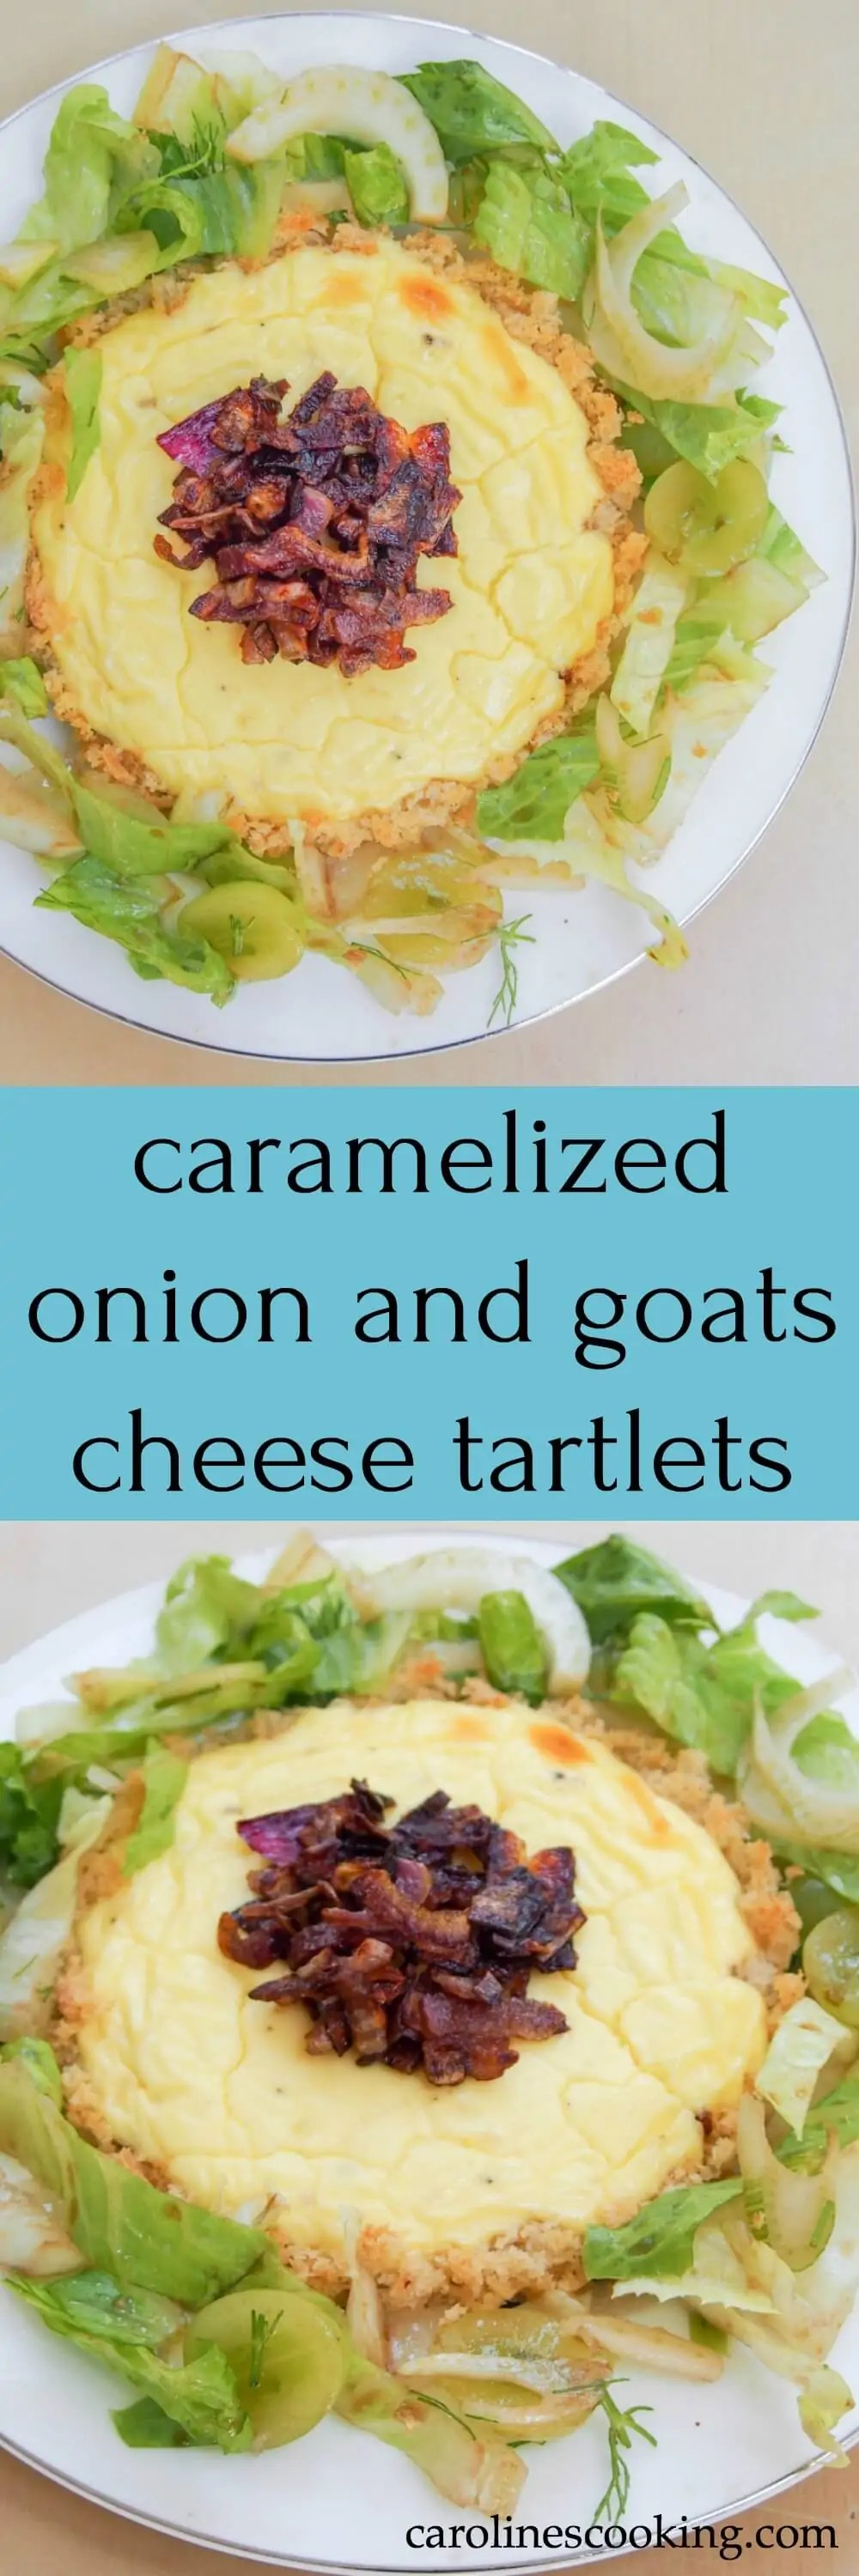 These caramelized onion and goats cheese tartlets are easy to make and so delicious. Cheesy but not heavy with a crispy buttery-crumb base. A perfect lunch.